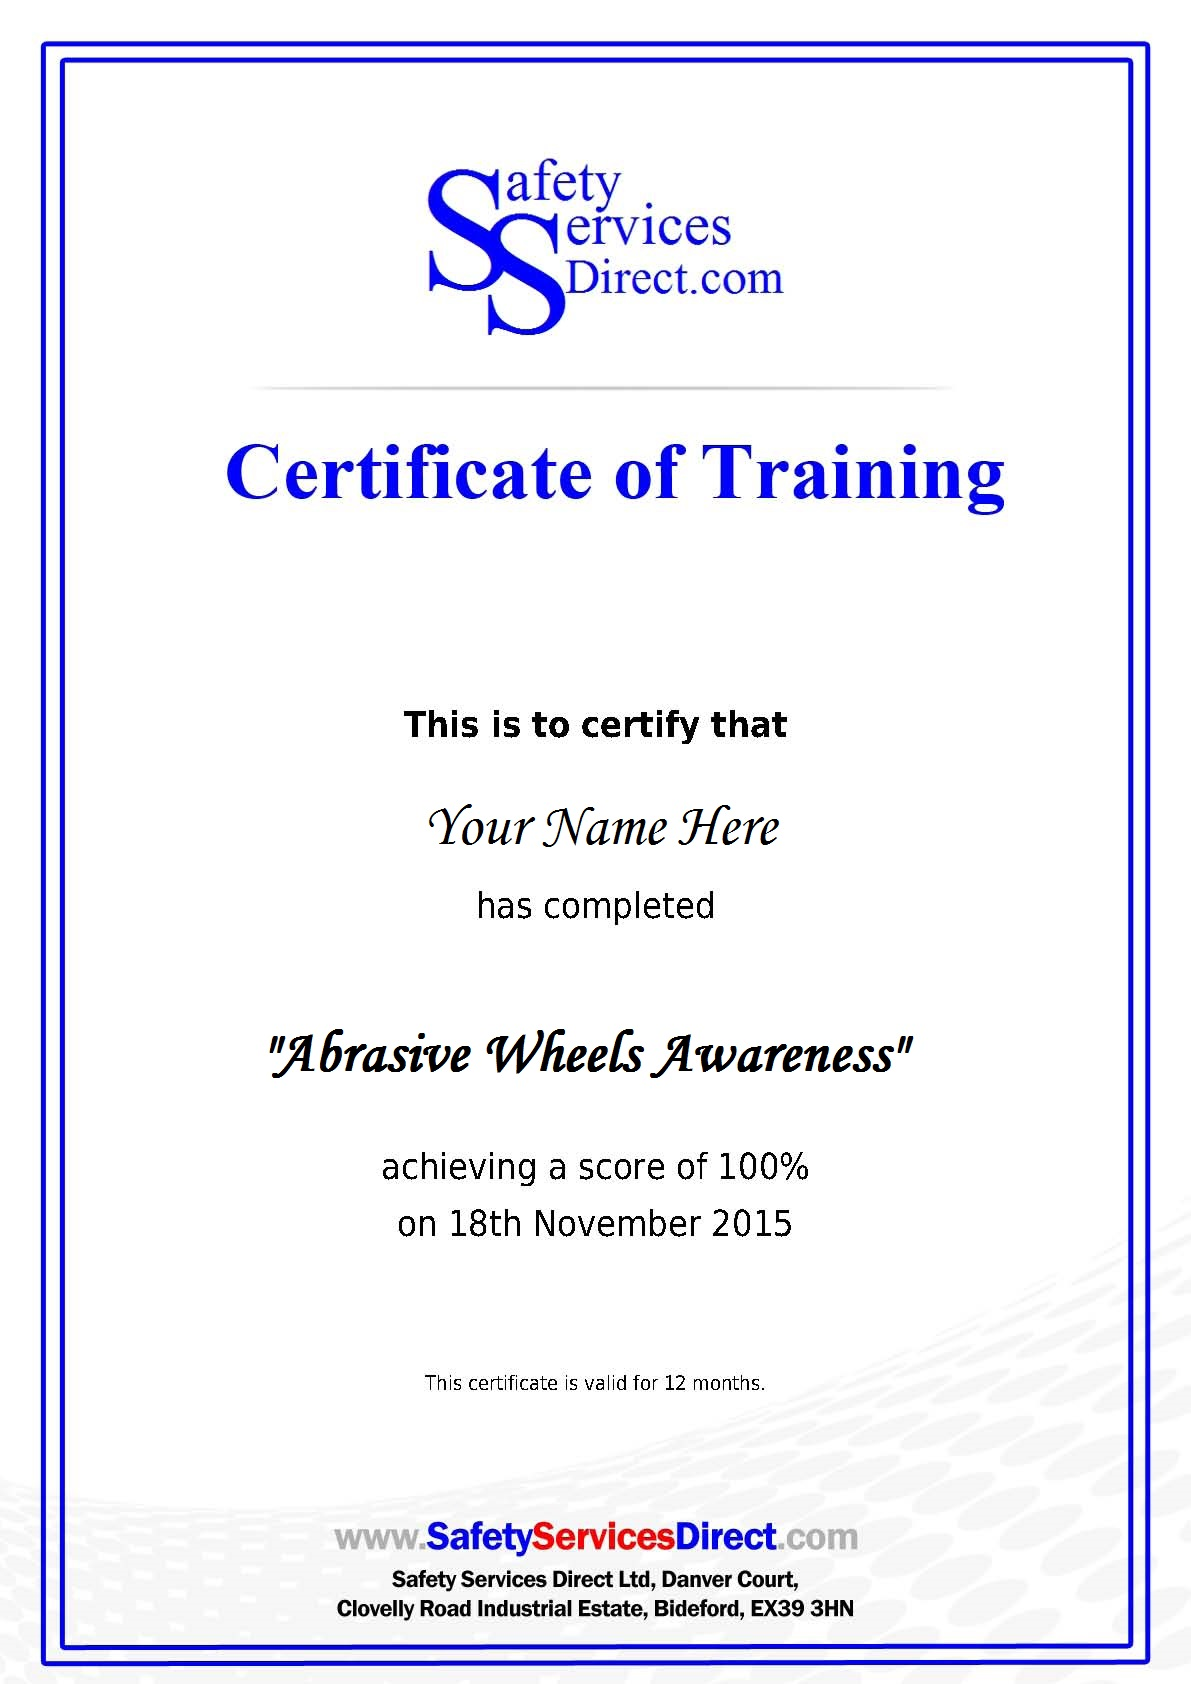 Safety training certificate template fieldstation safety training certificate template 1betcityfo Gallery